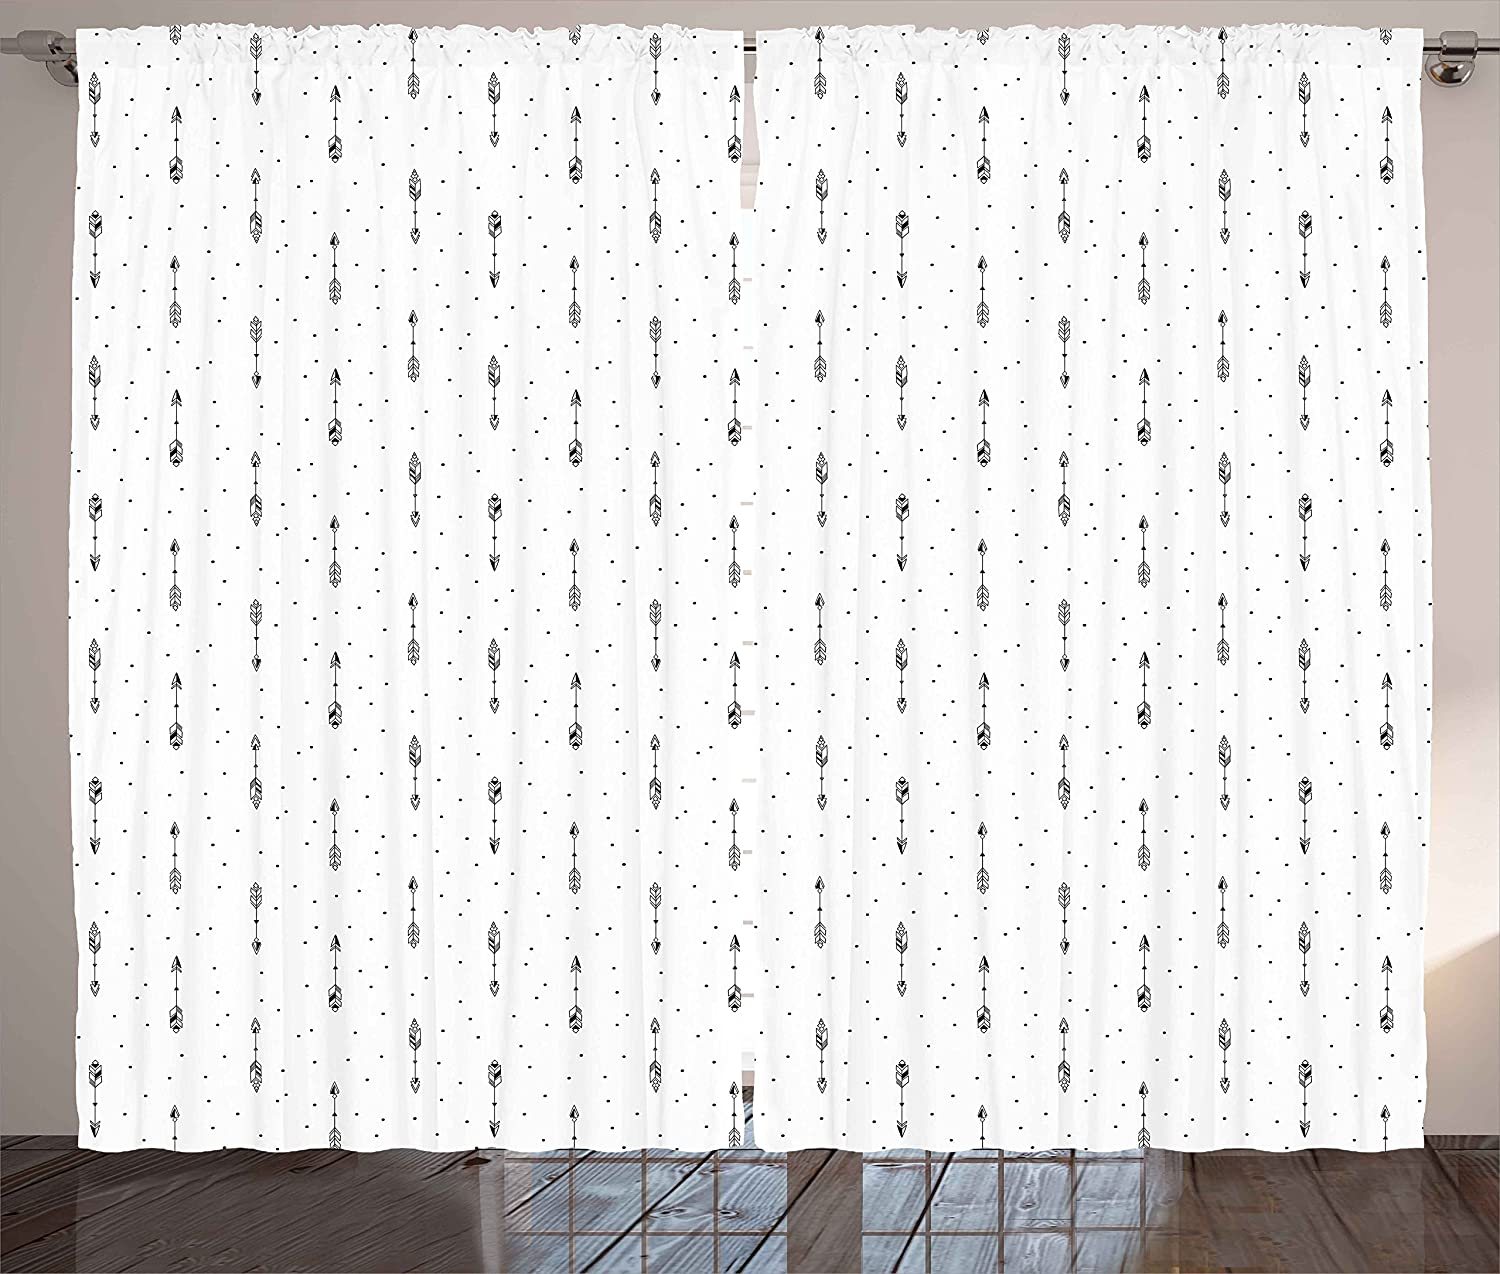 Ambesonne Abstract Curtains Manufacturer OFFicial shop Minimalist Polka Pattern with Arrow NEW